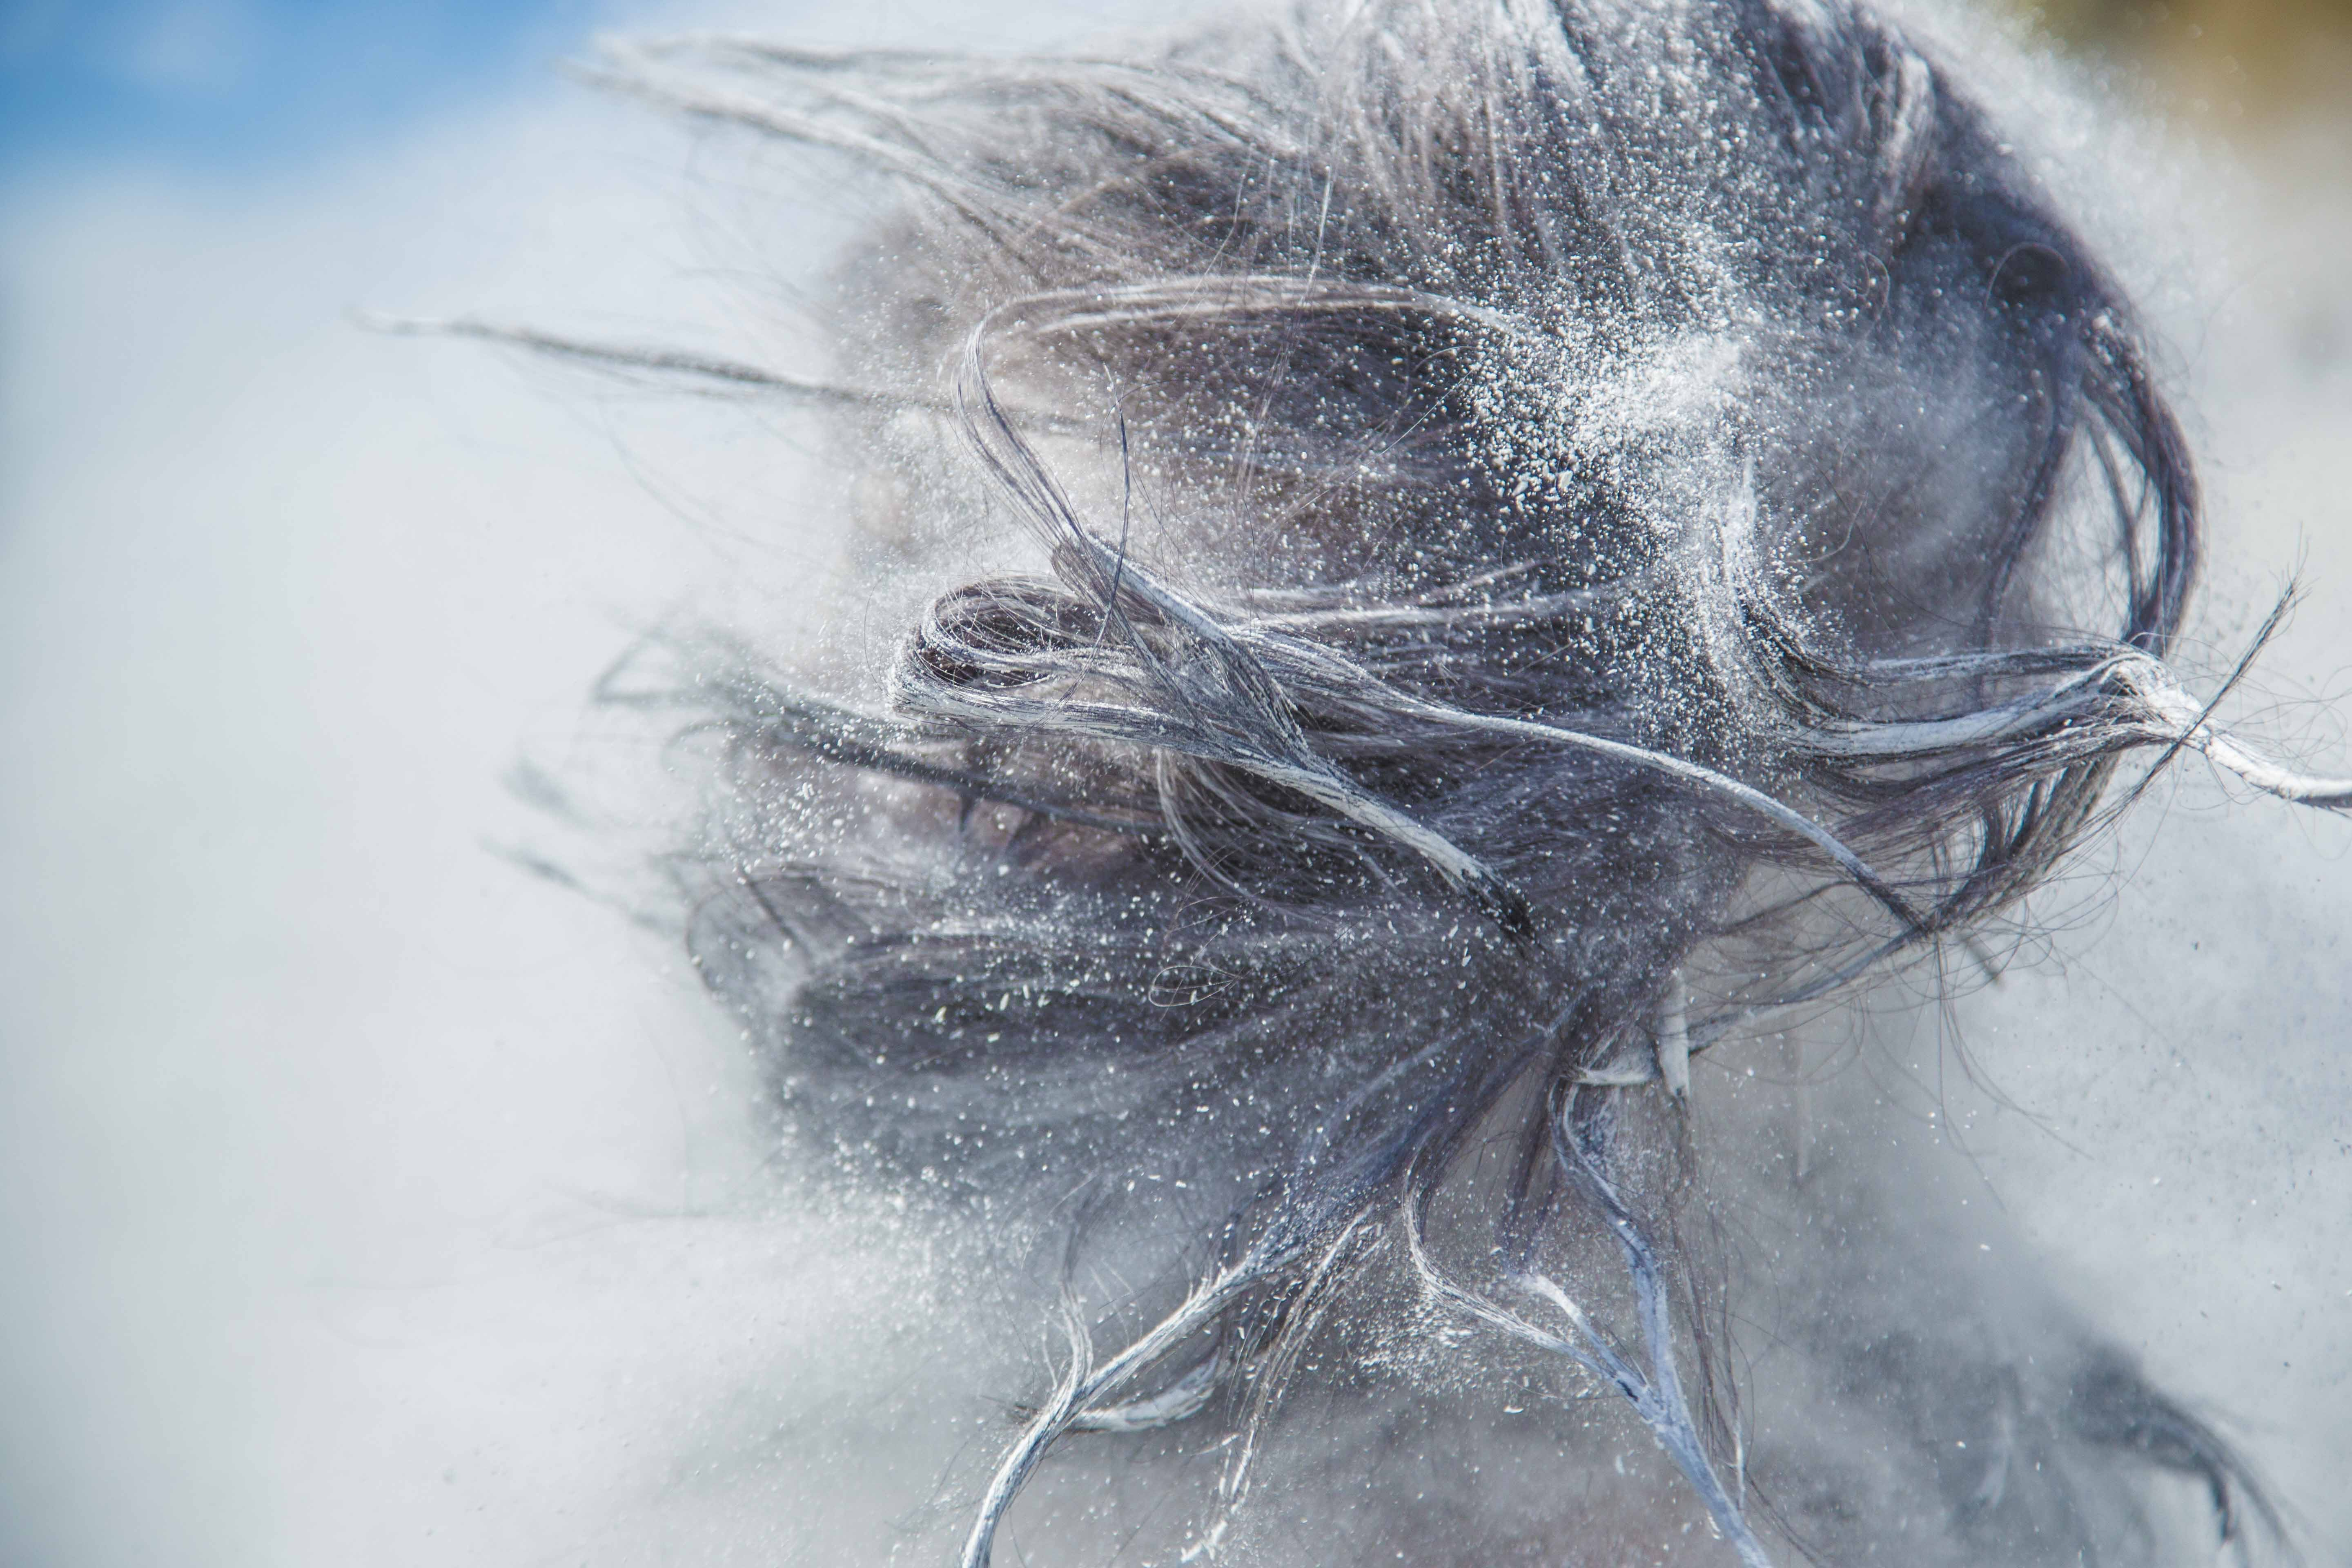 A macro view of snow dusted hair in movement.